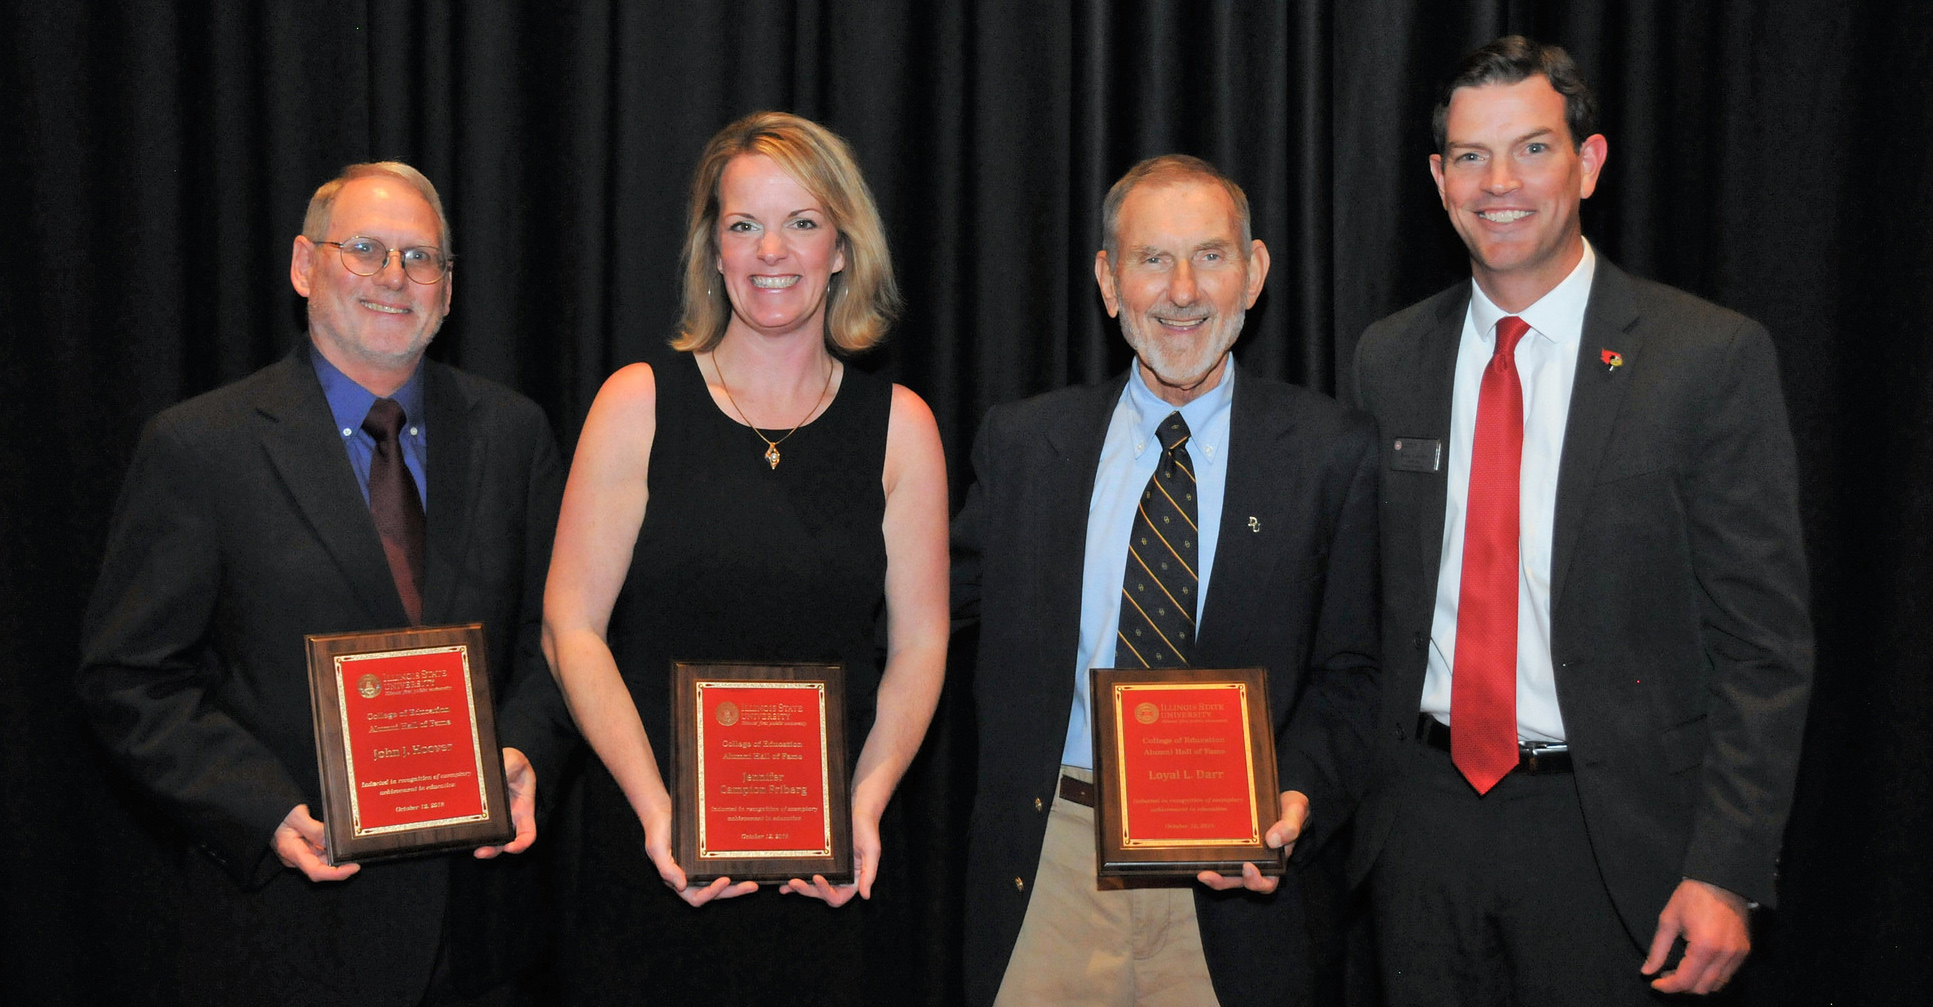 2018 College of Education Hall of Fame inductees